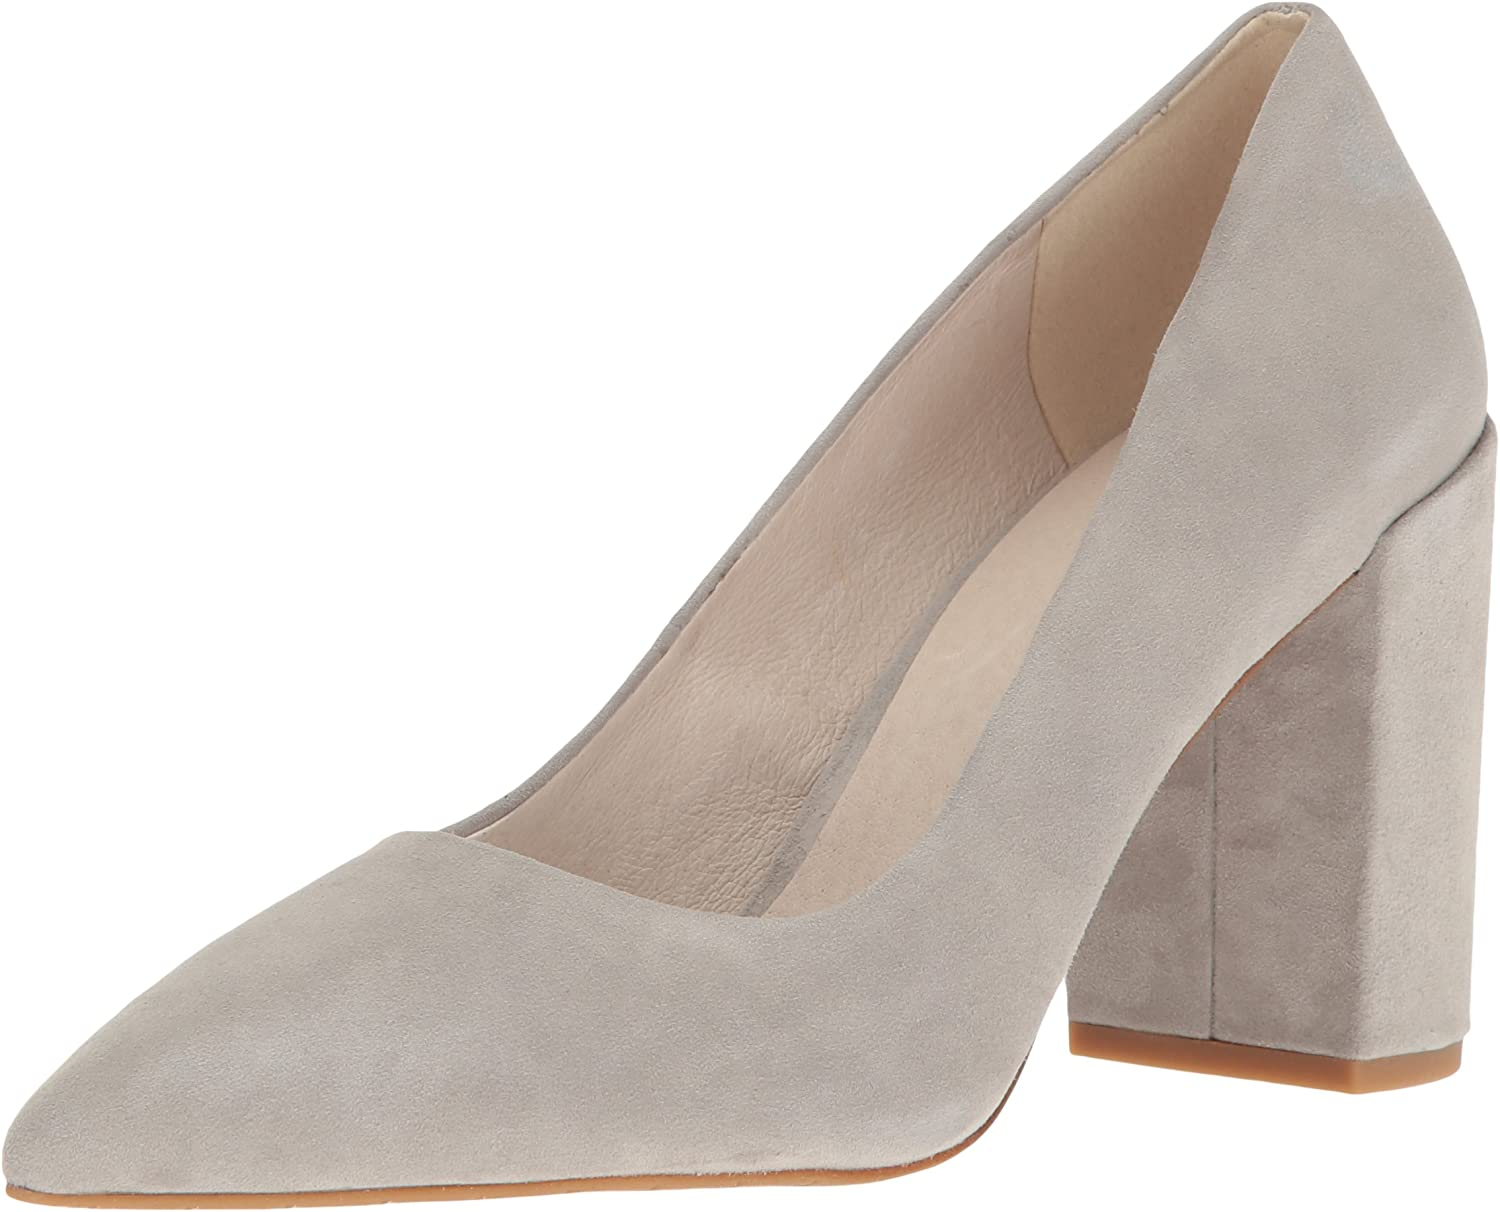 Kenneth Cole New York Women's Margaux Pumps